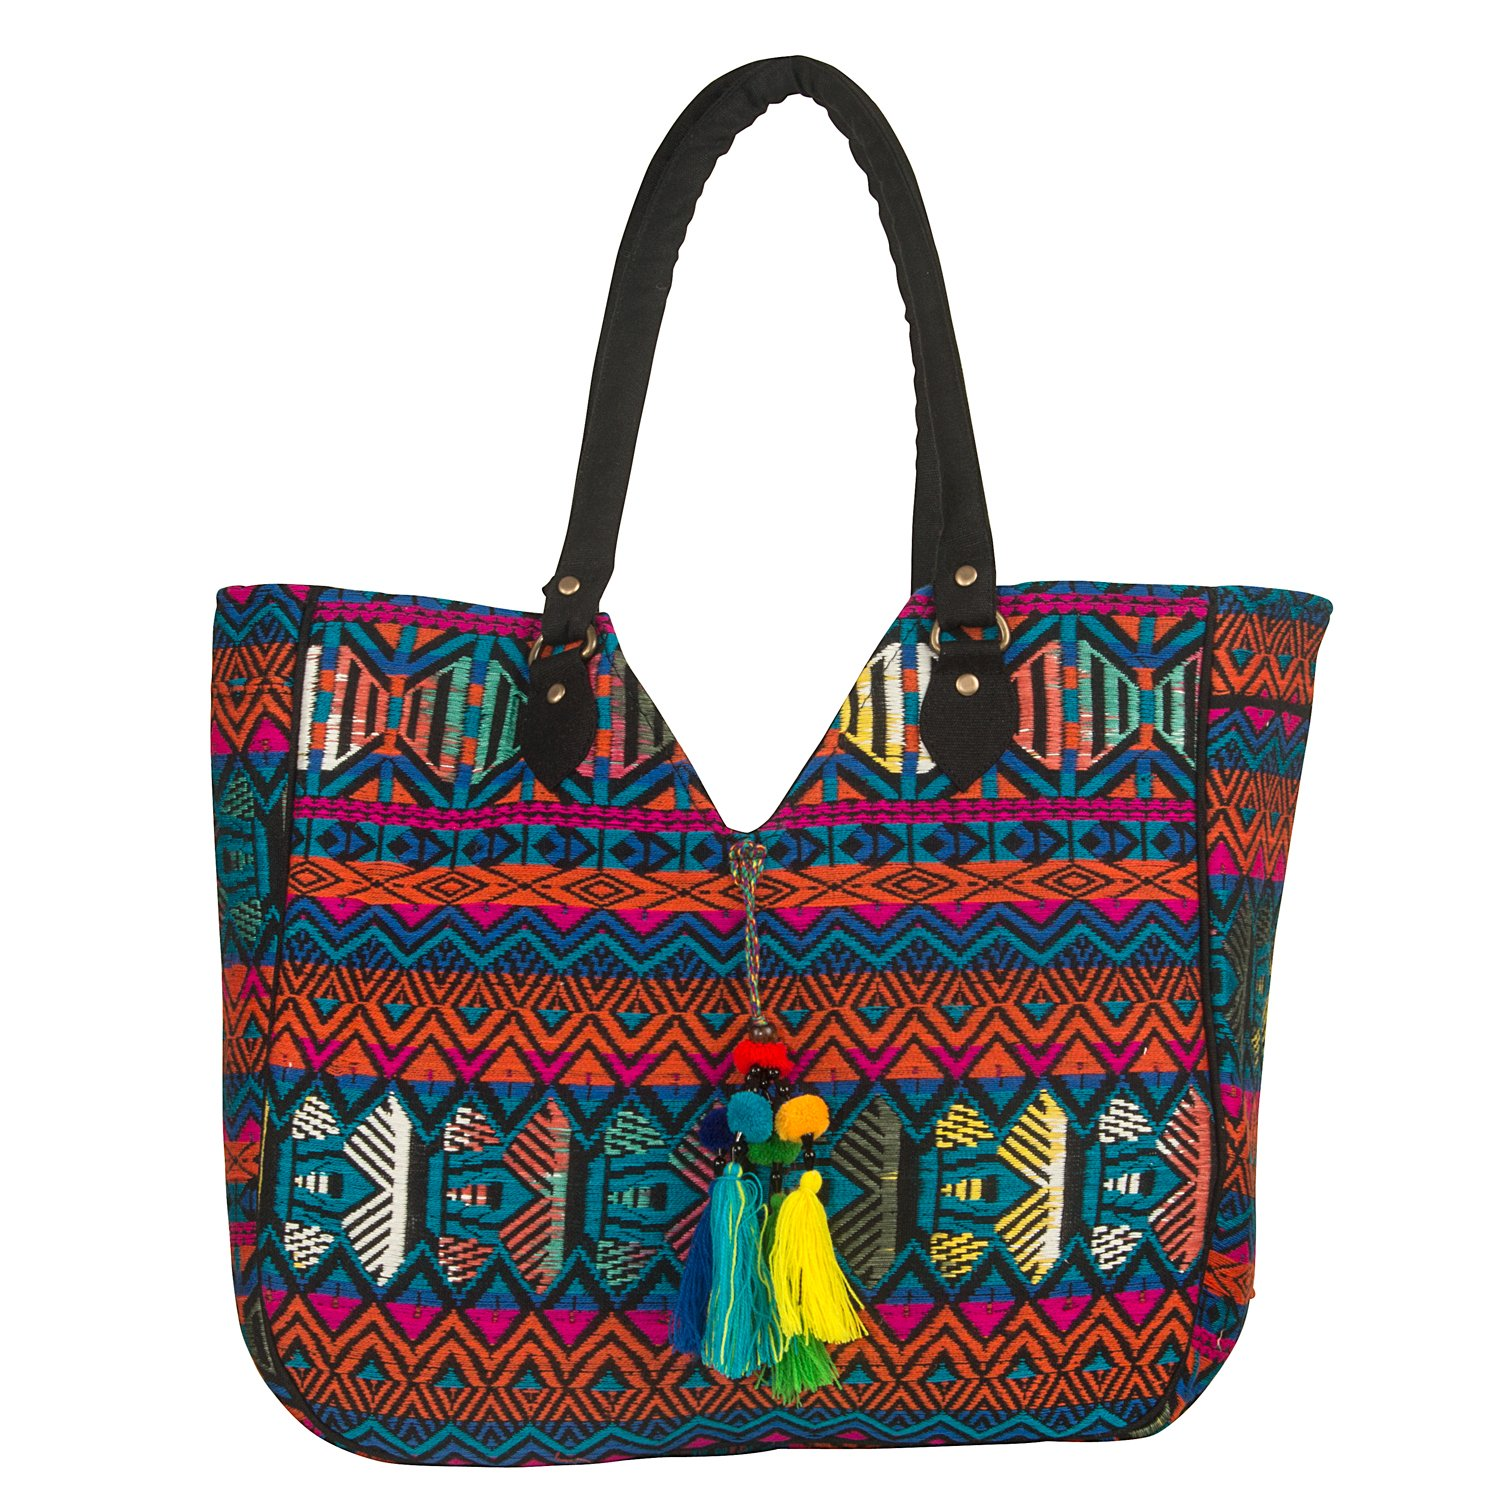 Tribe Azure Woven Shoulder Bag Tote Women Purse Summer Spring Beach School Laptop Roomy Casual Everyday